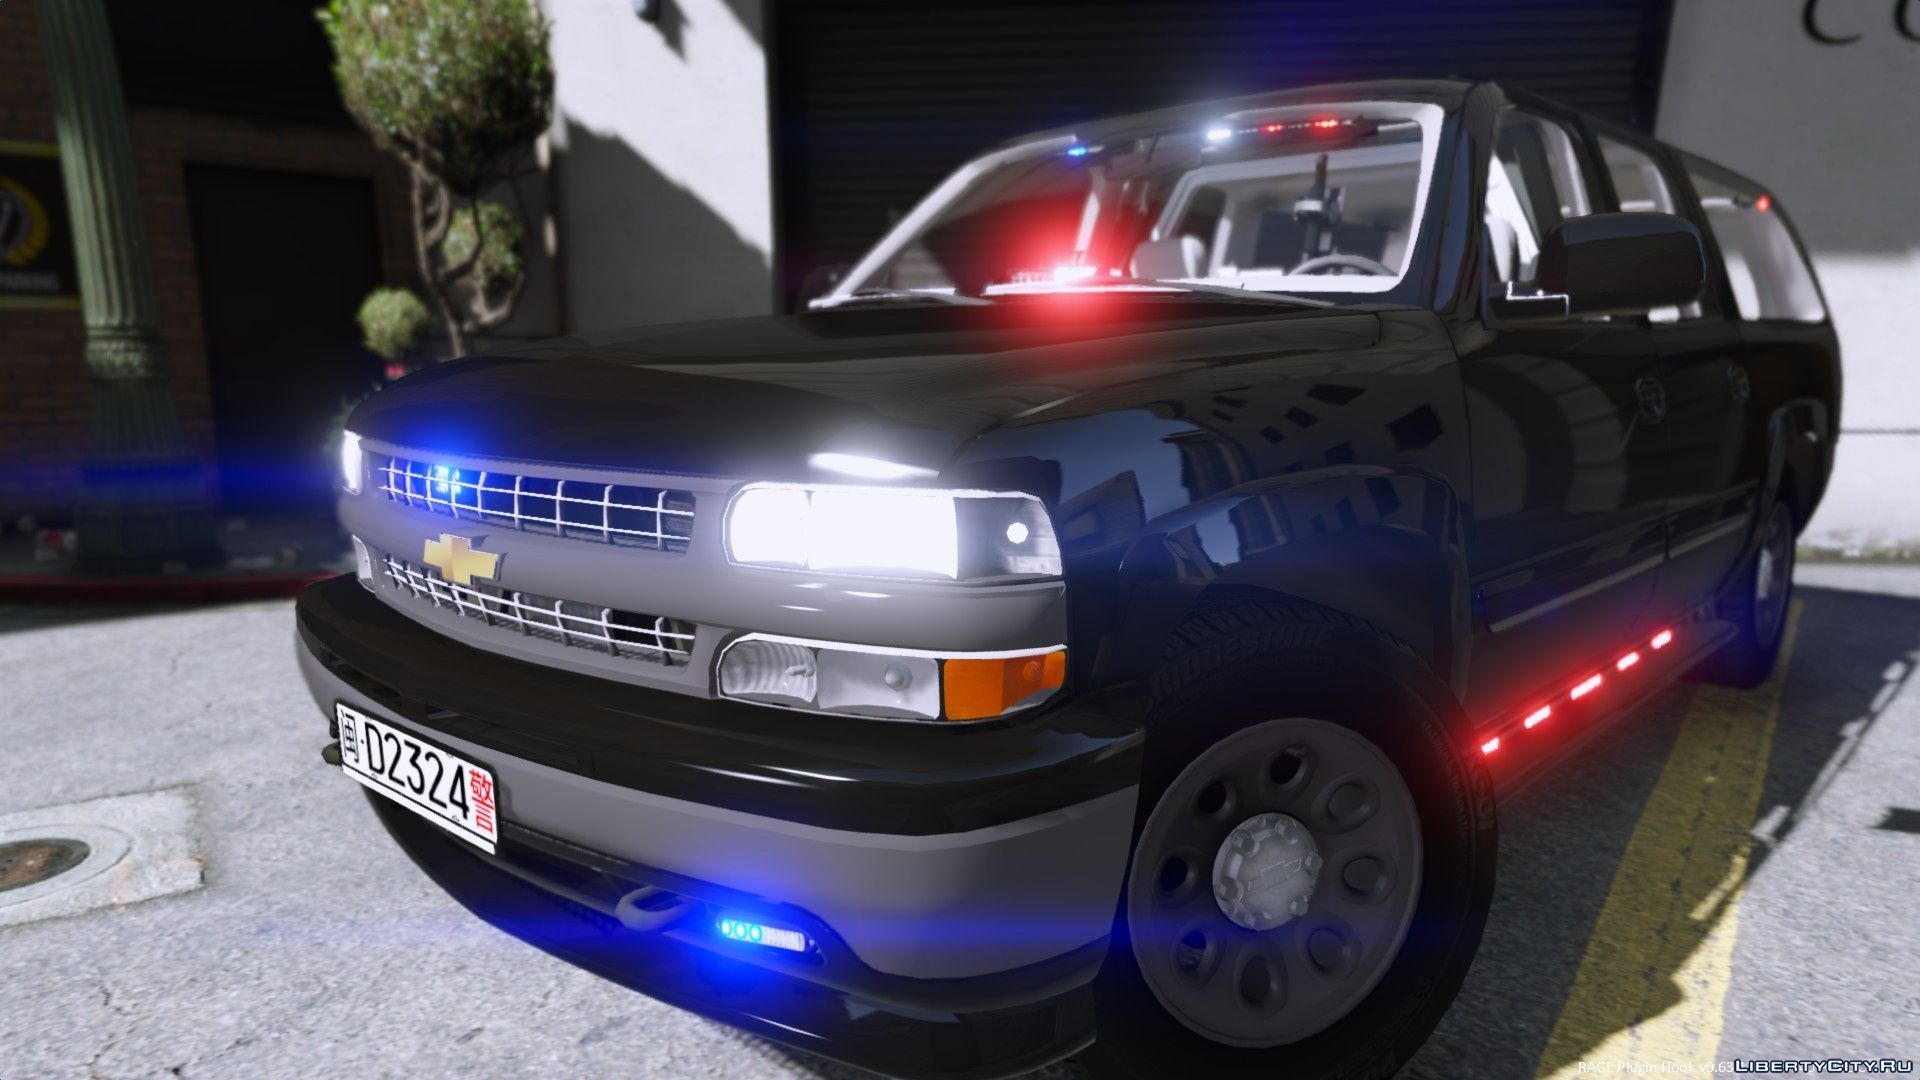 Files for GTA: mods, cars / Page 41